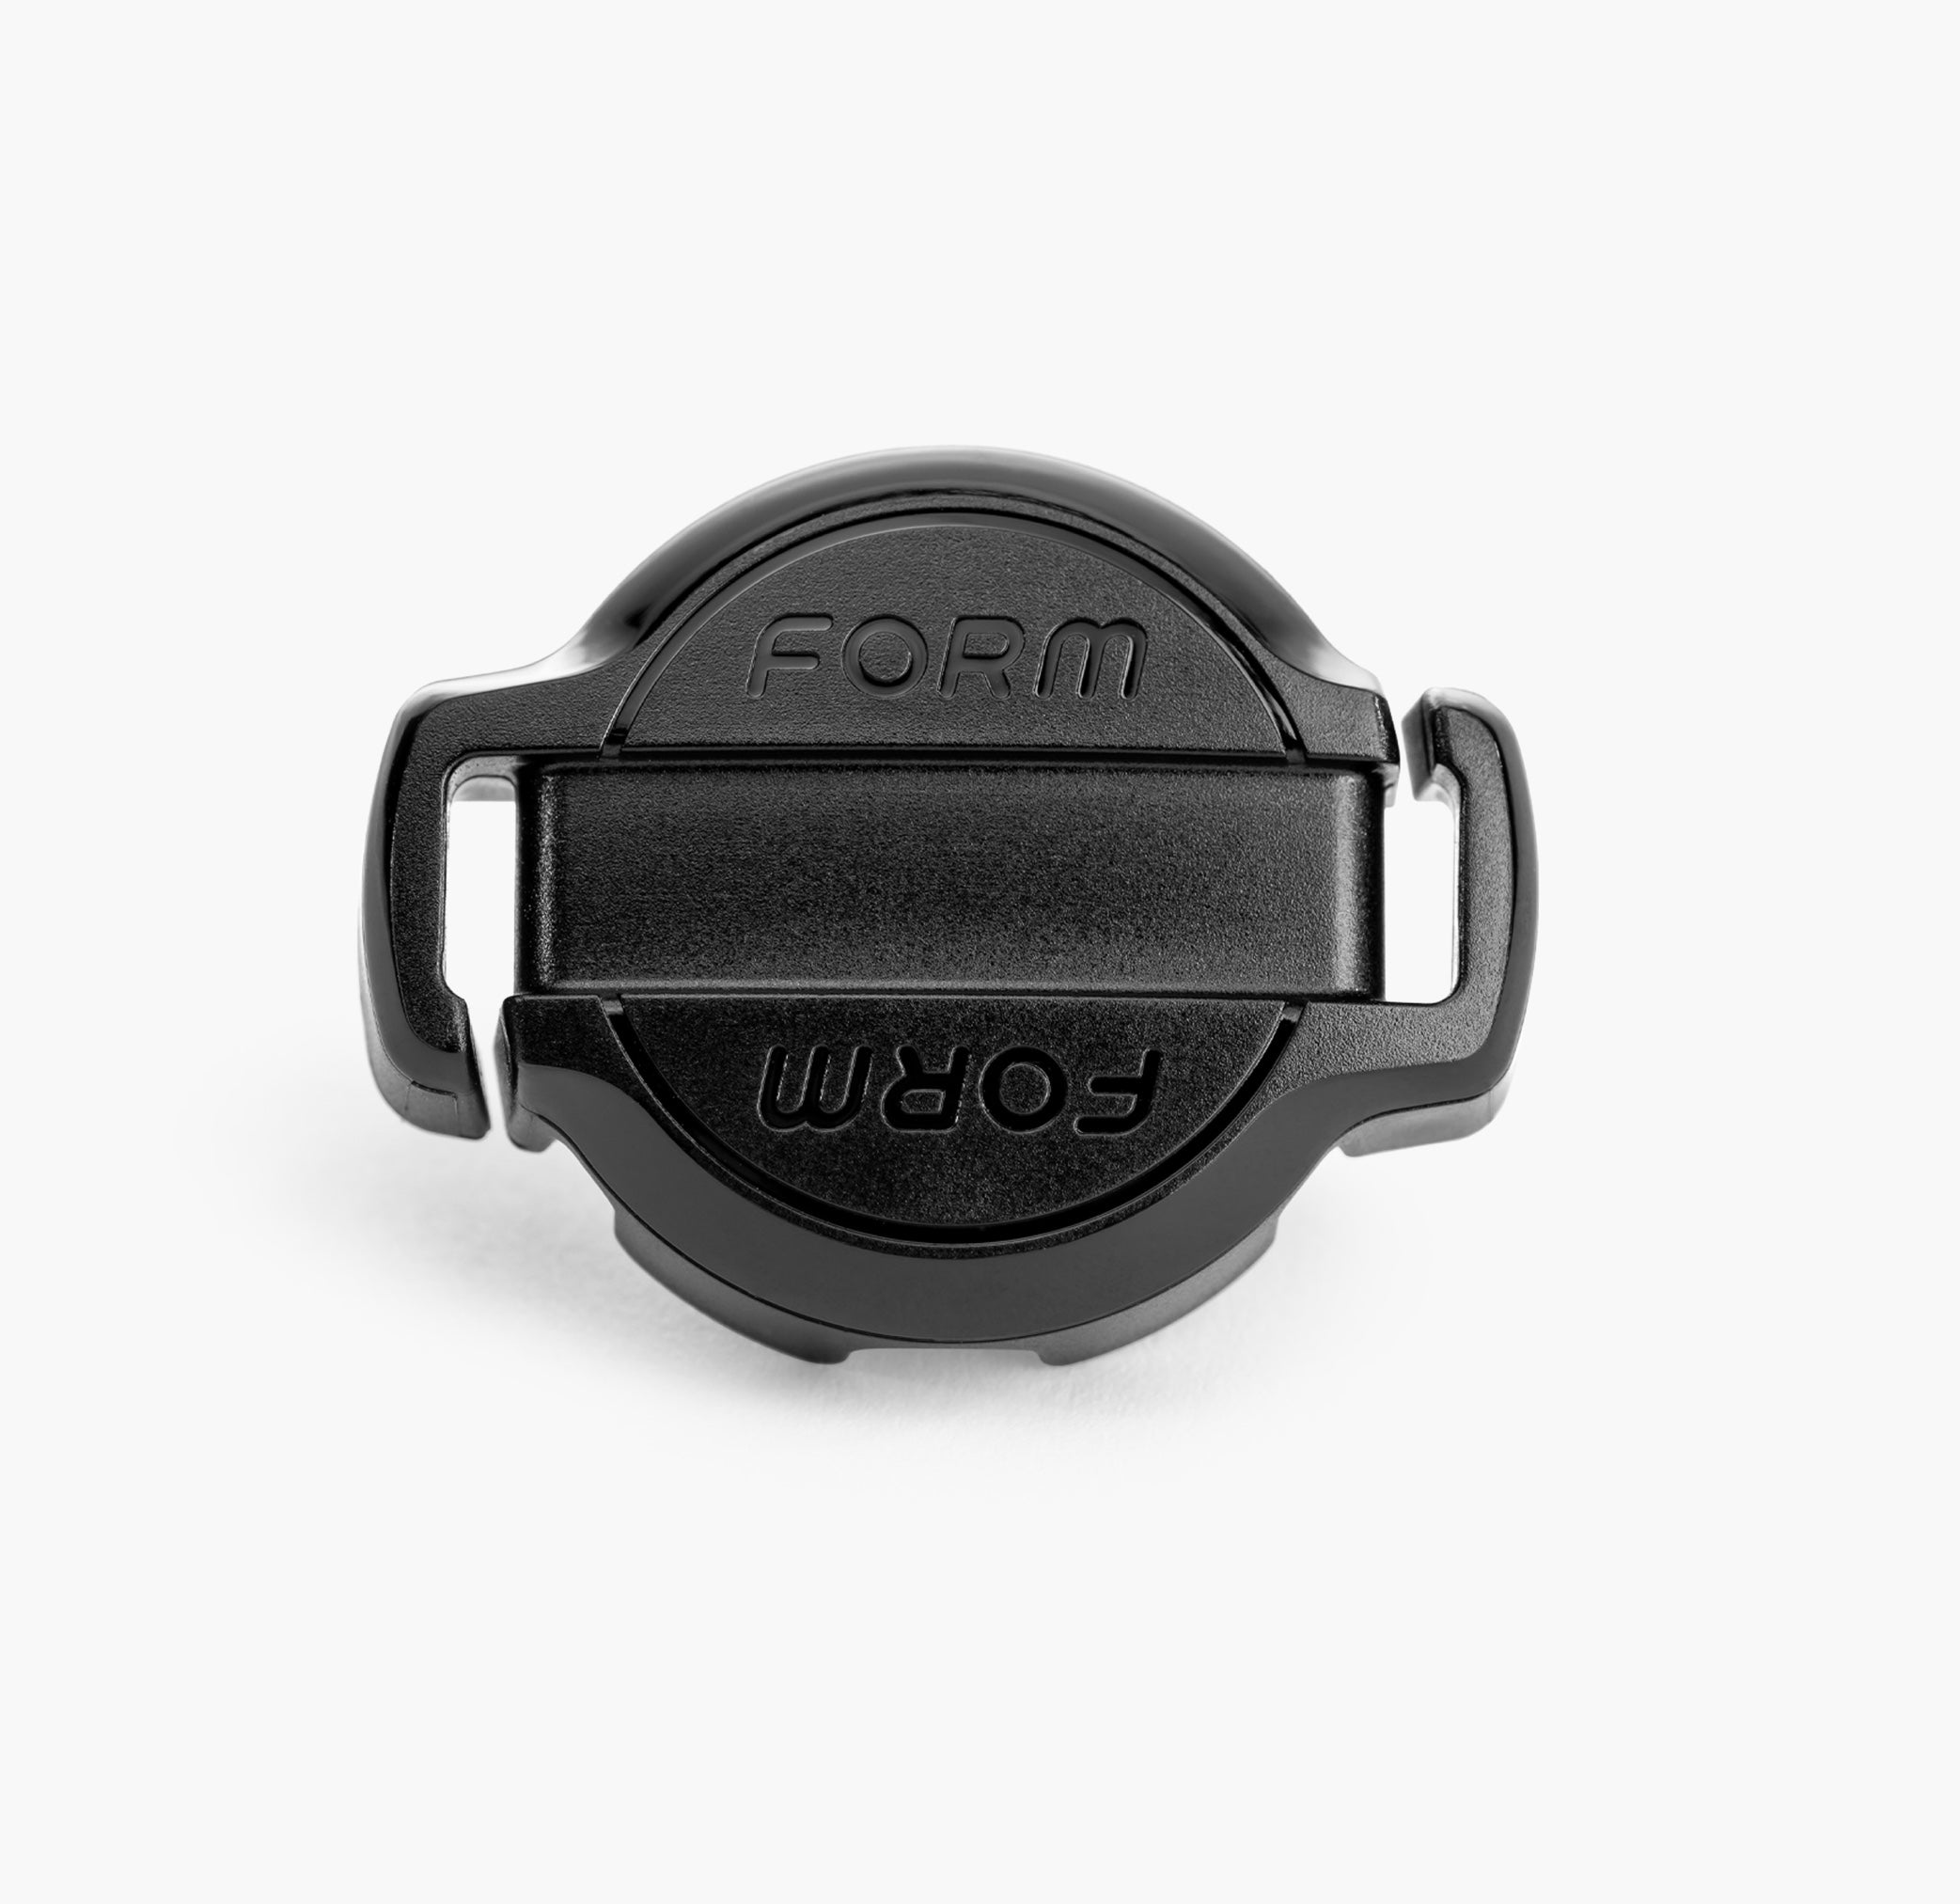 FORM Smart Swim Goggles Mounting Clip for the Polar OH1 Heart Rate Sensor